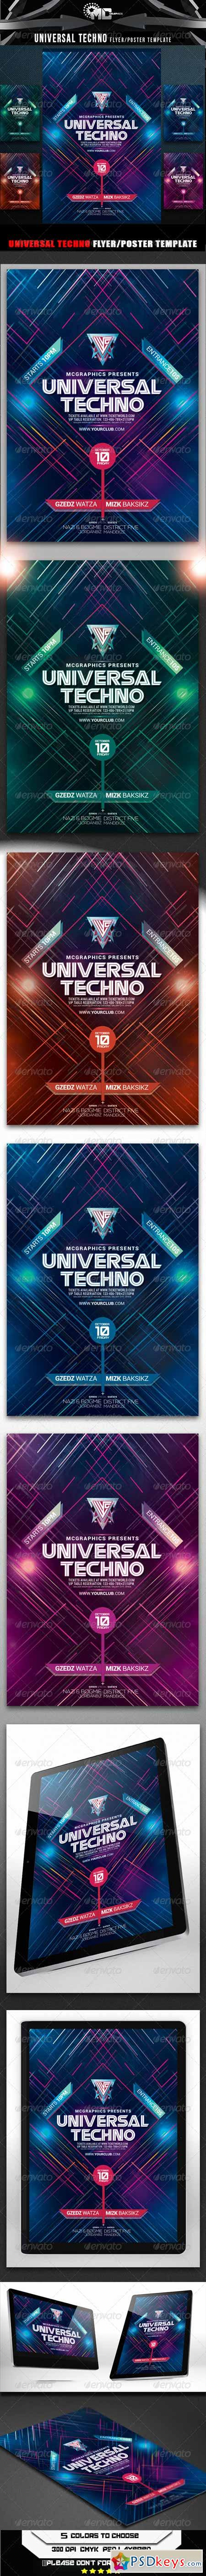 Universal Techno Flyer Poster Template 8543982